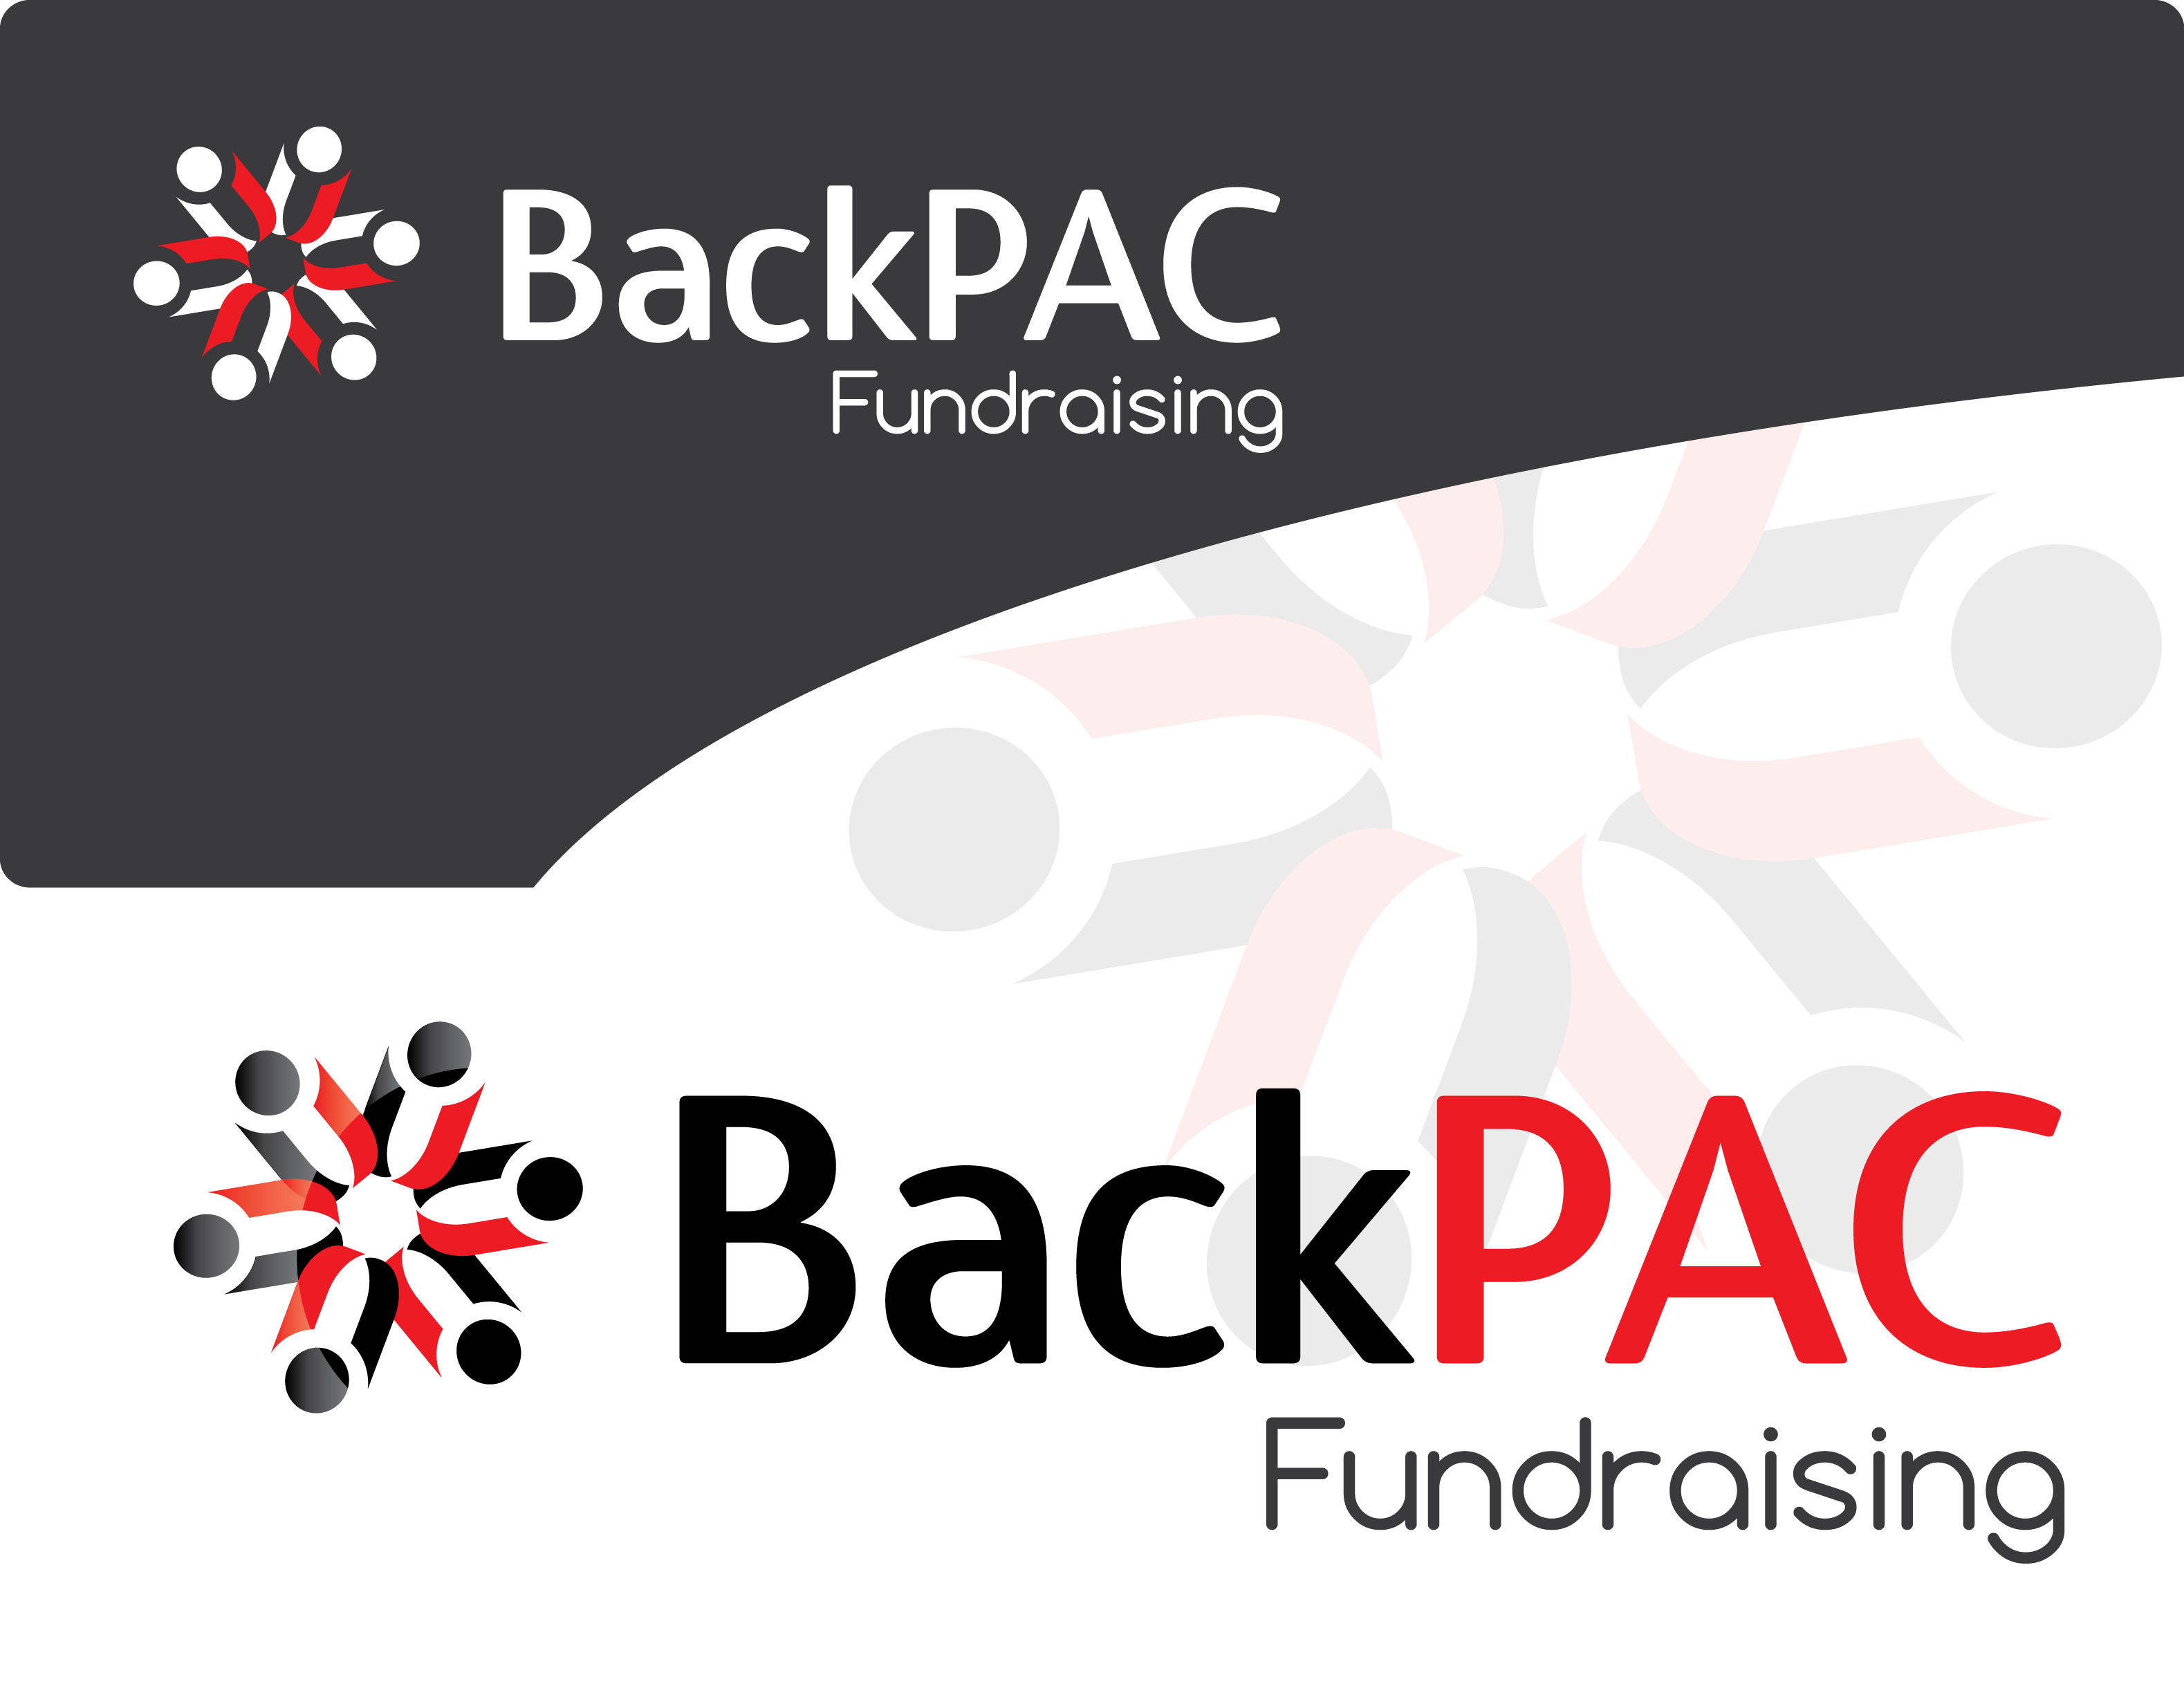 Logo Design by 354studio - Entry No. 52 in the Logo Design Contest Imaginative Logo Design for BackPAC Fundraising.